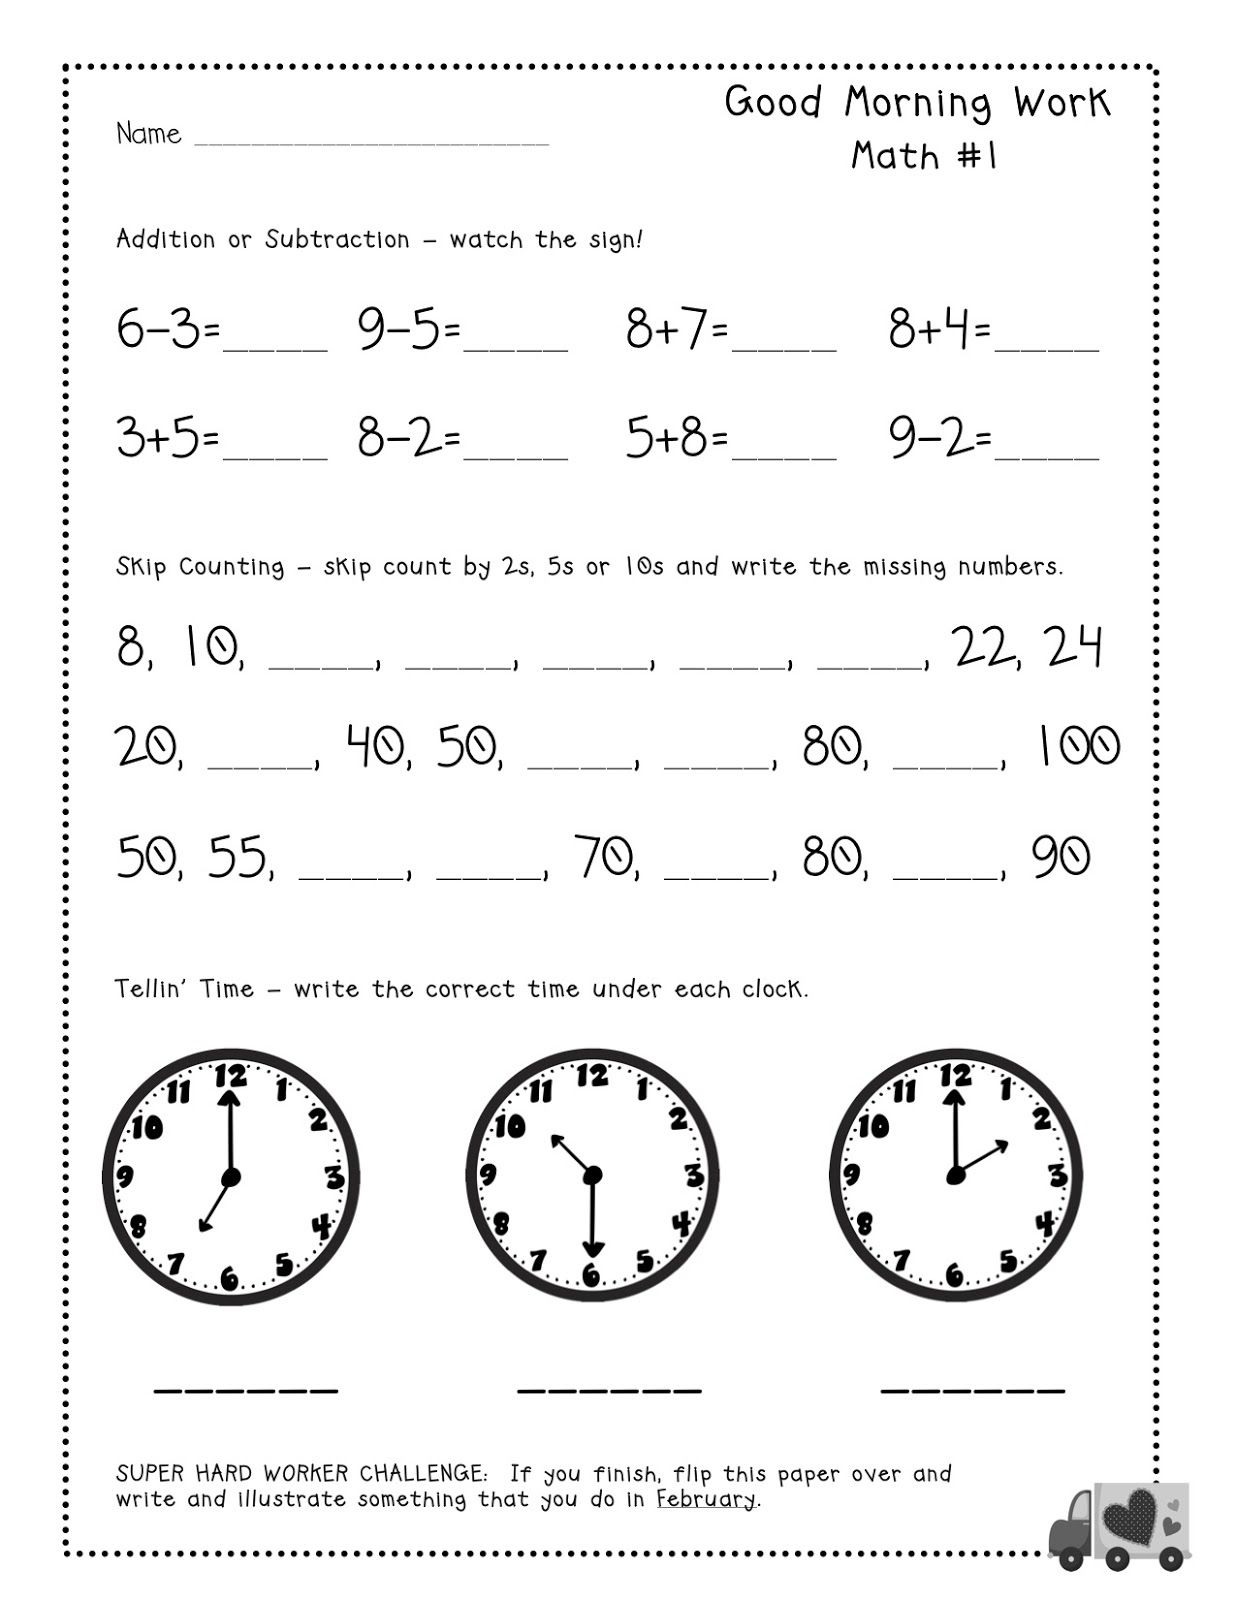 Free tester Good Morning Work pages for firsties Common core – Morning Math Worksheets